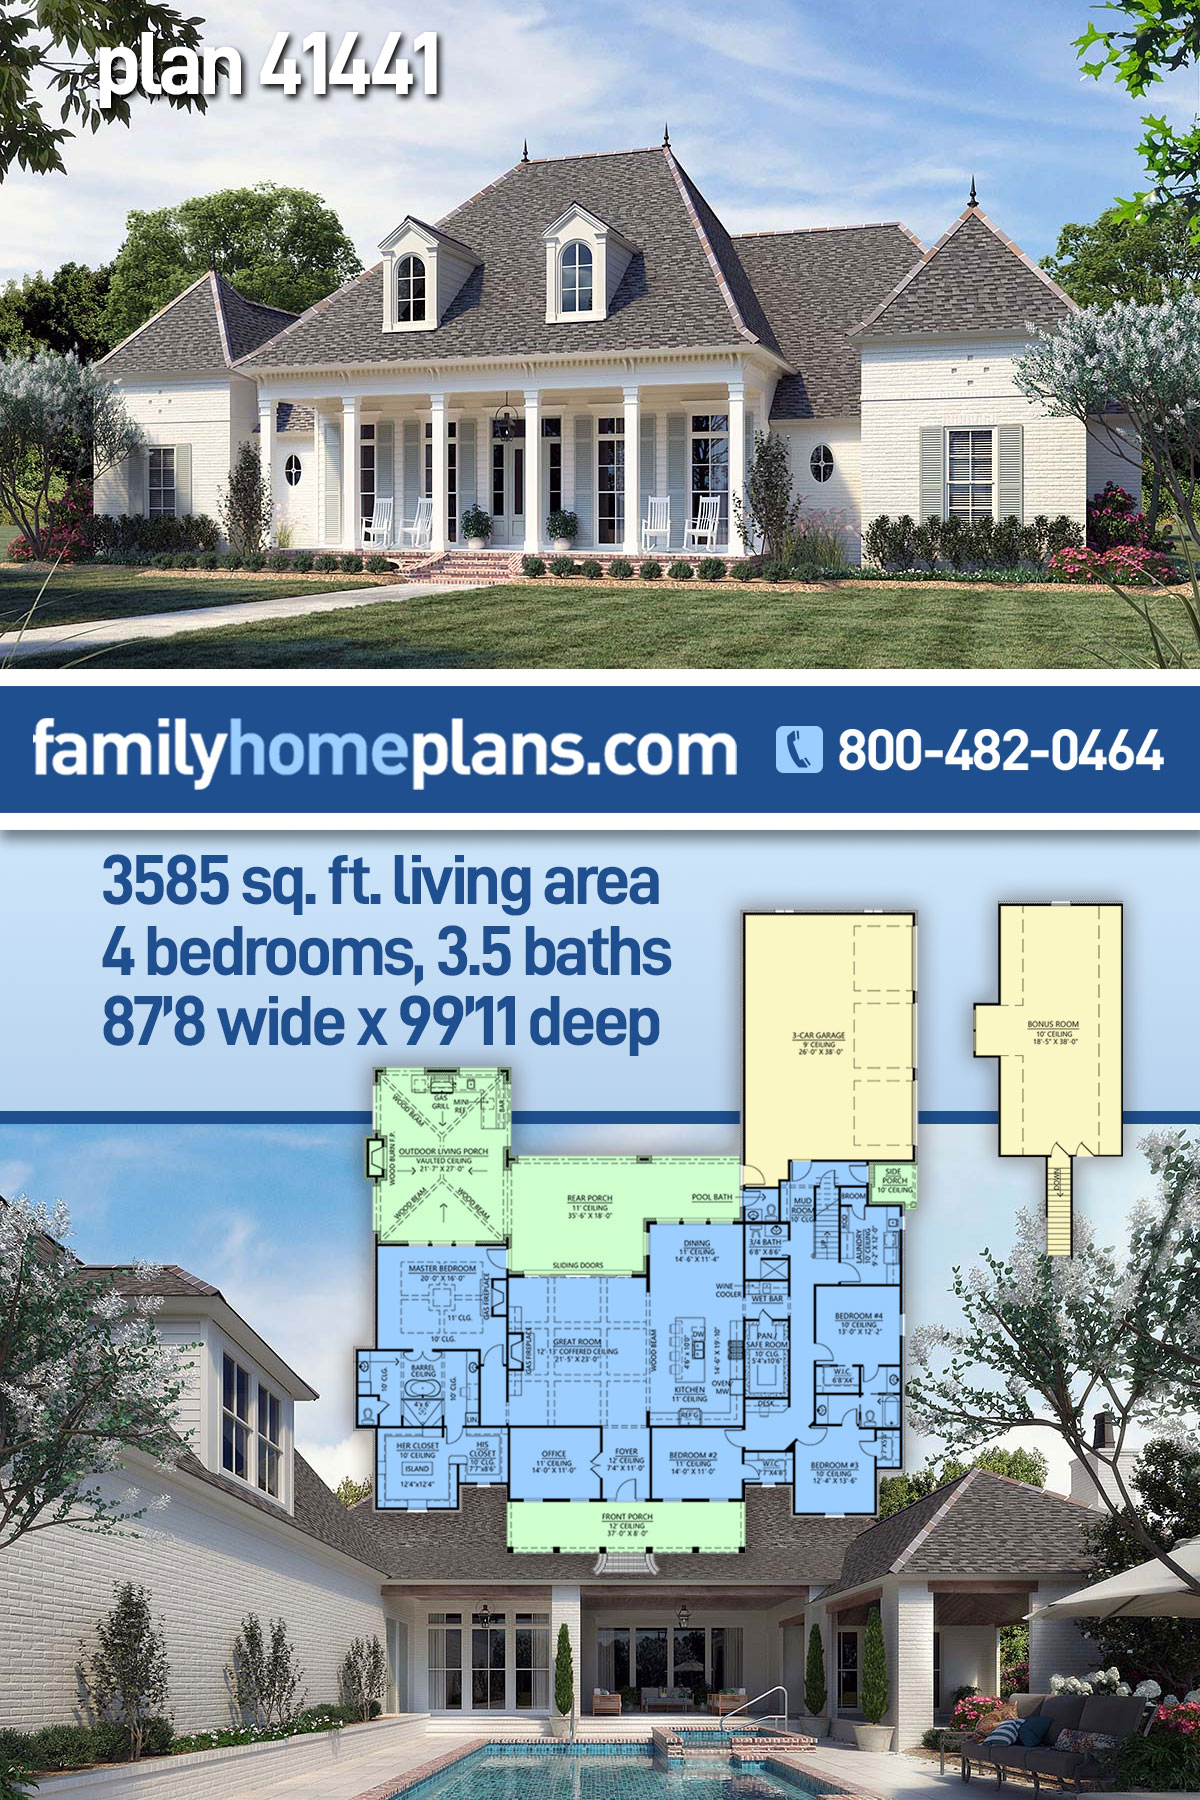 Acadian, French Country, Southern House Plan 41441 with 4 Beds, 4 Baths, 3 Car Garage